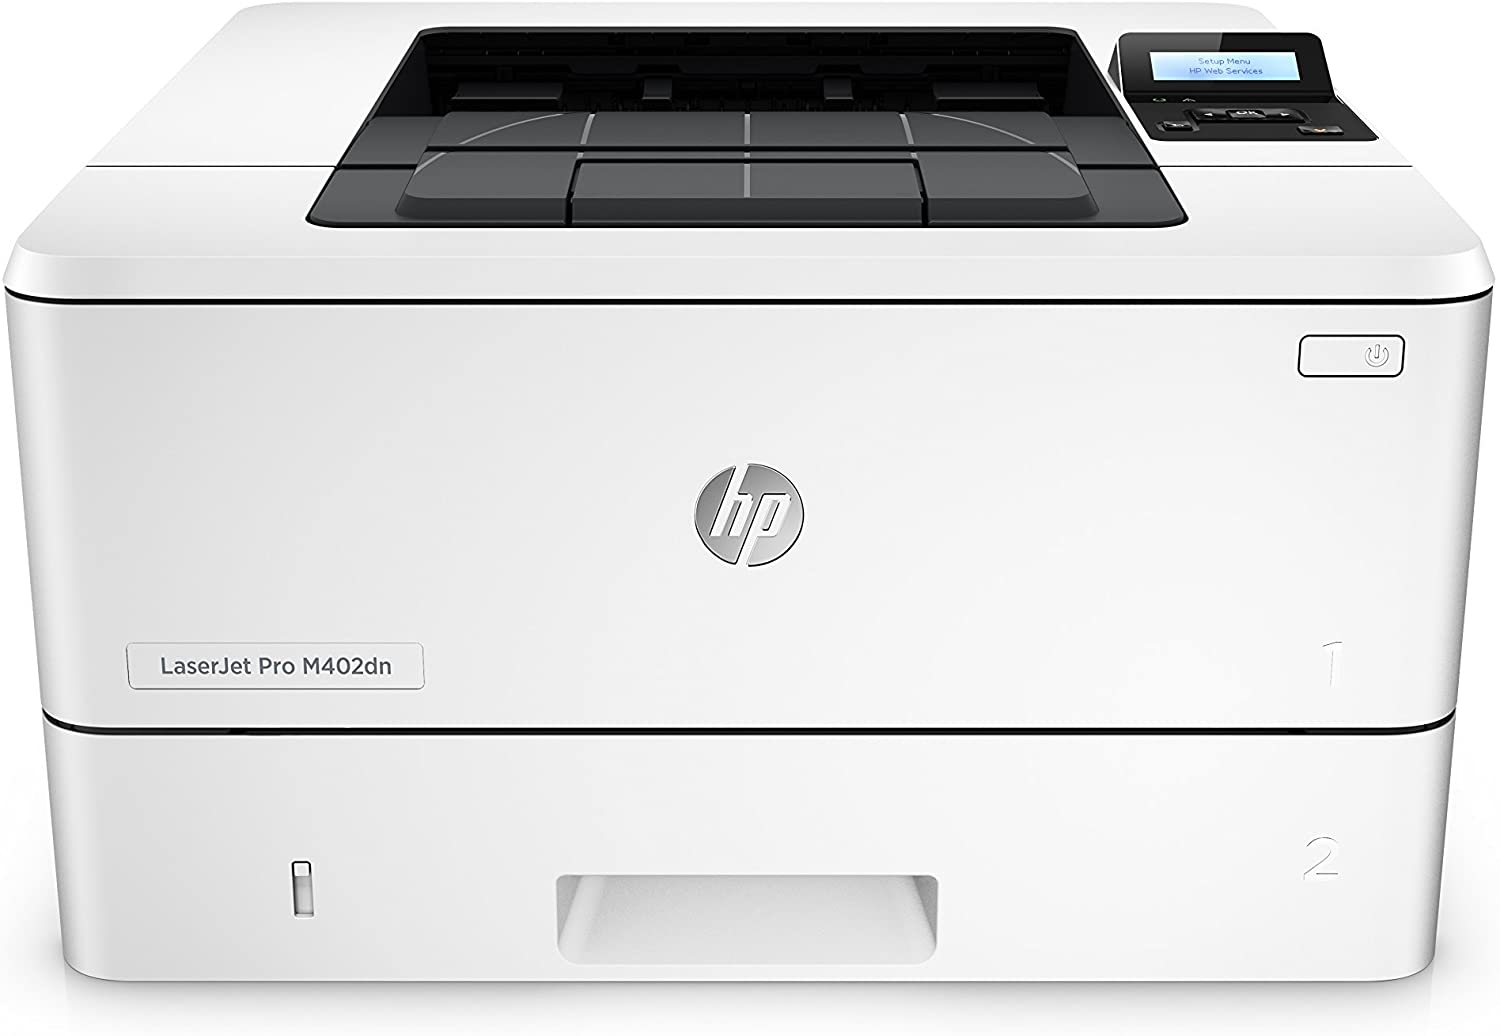 HP Laserjet Pro M402dn Monochrome Printer, Amazon Dash Replenishment Ready (C5F94A) (Renewed)